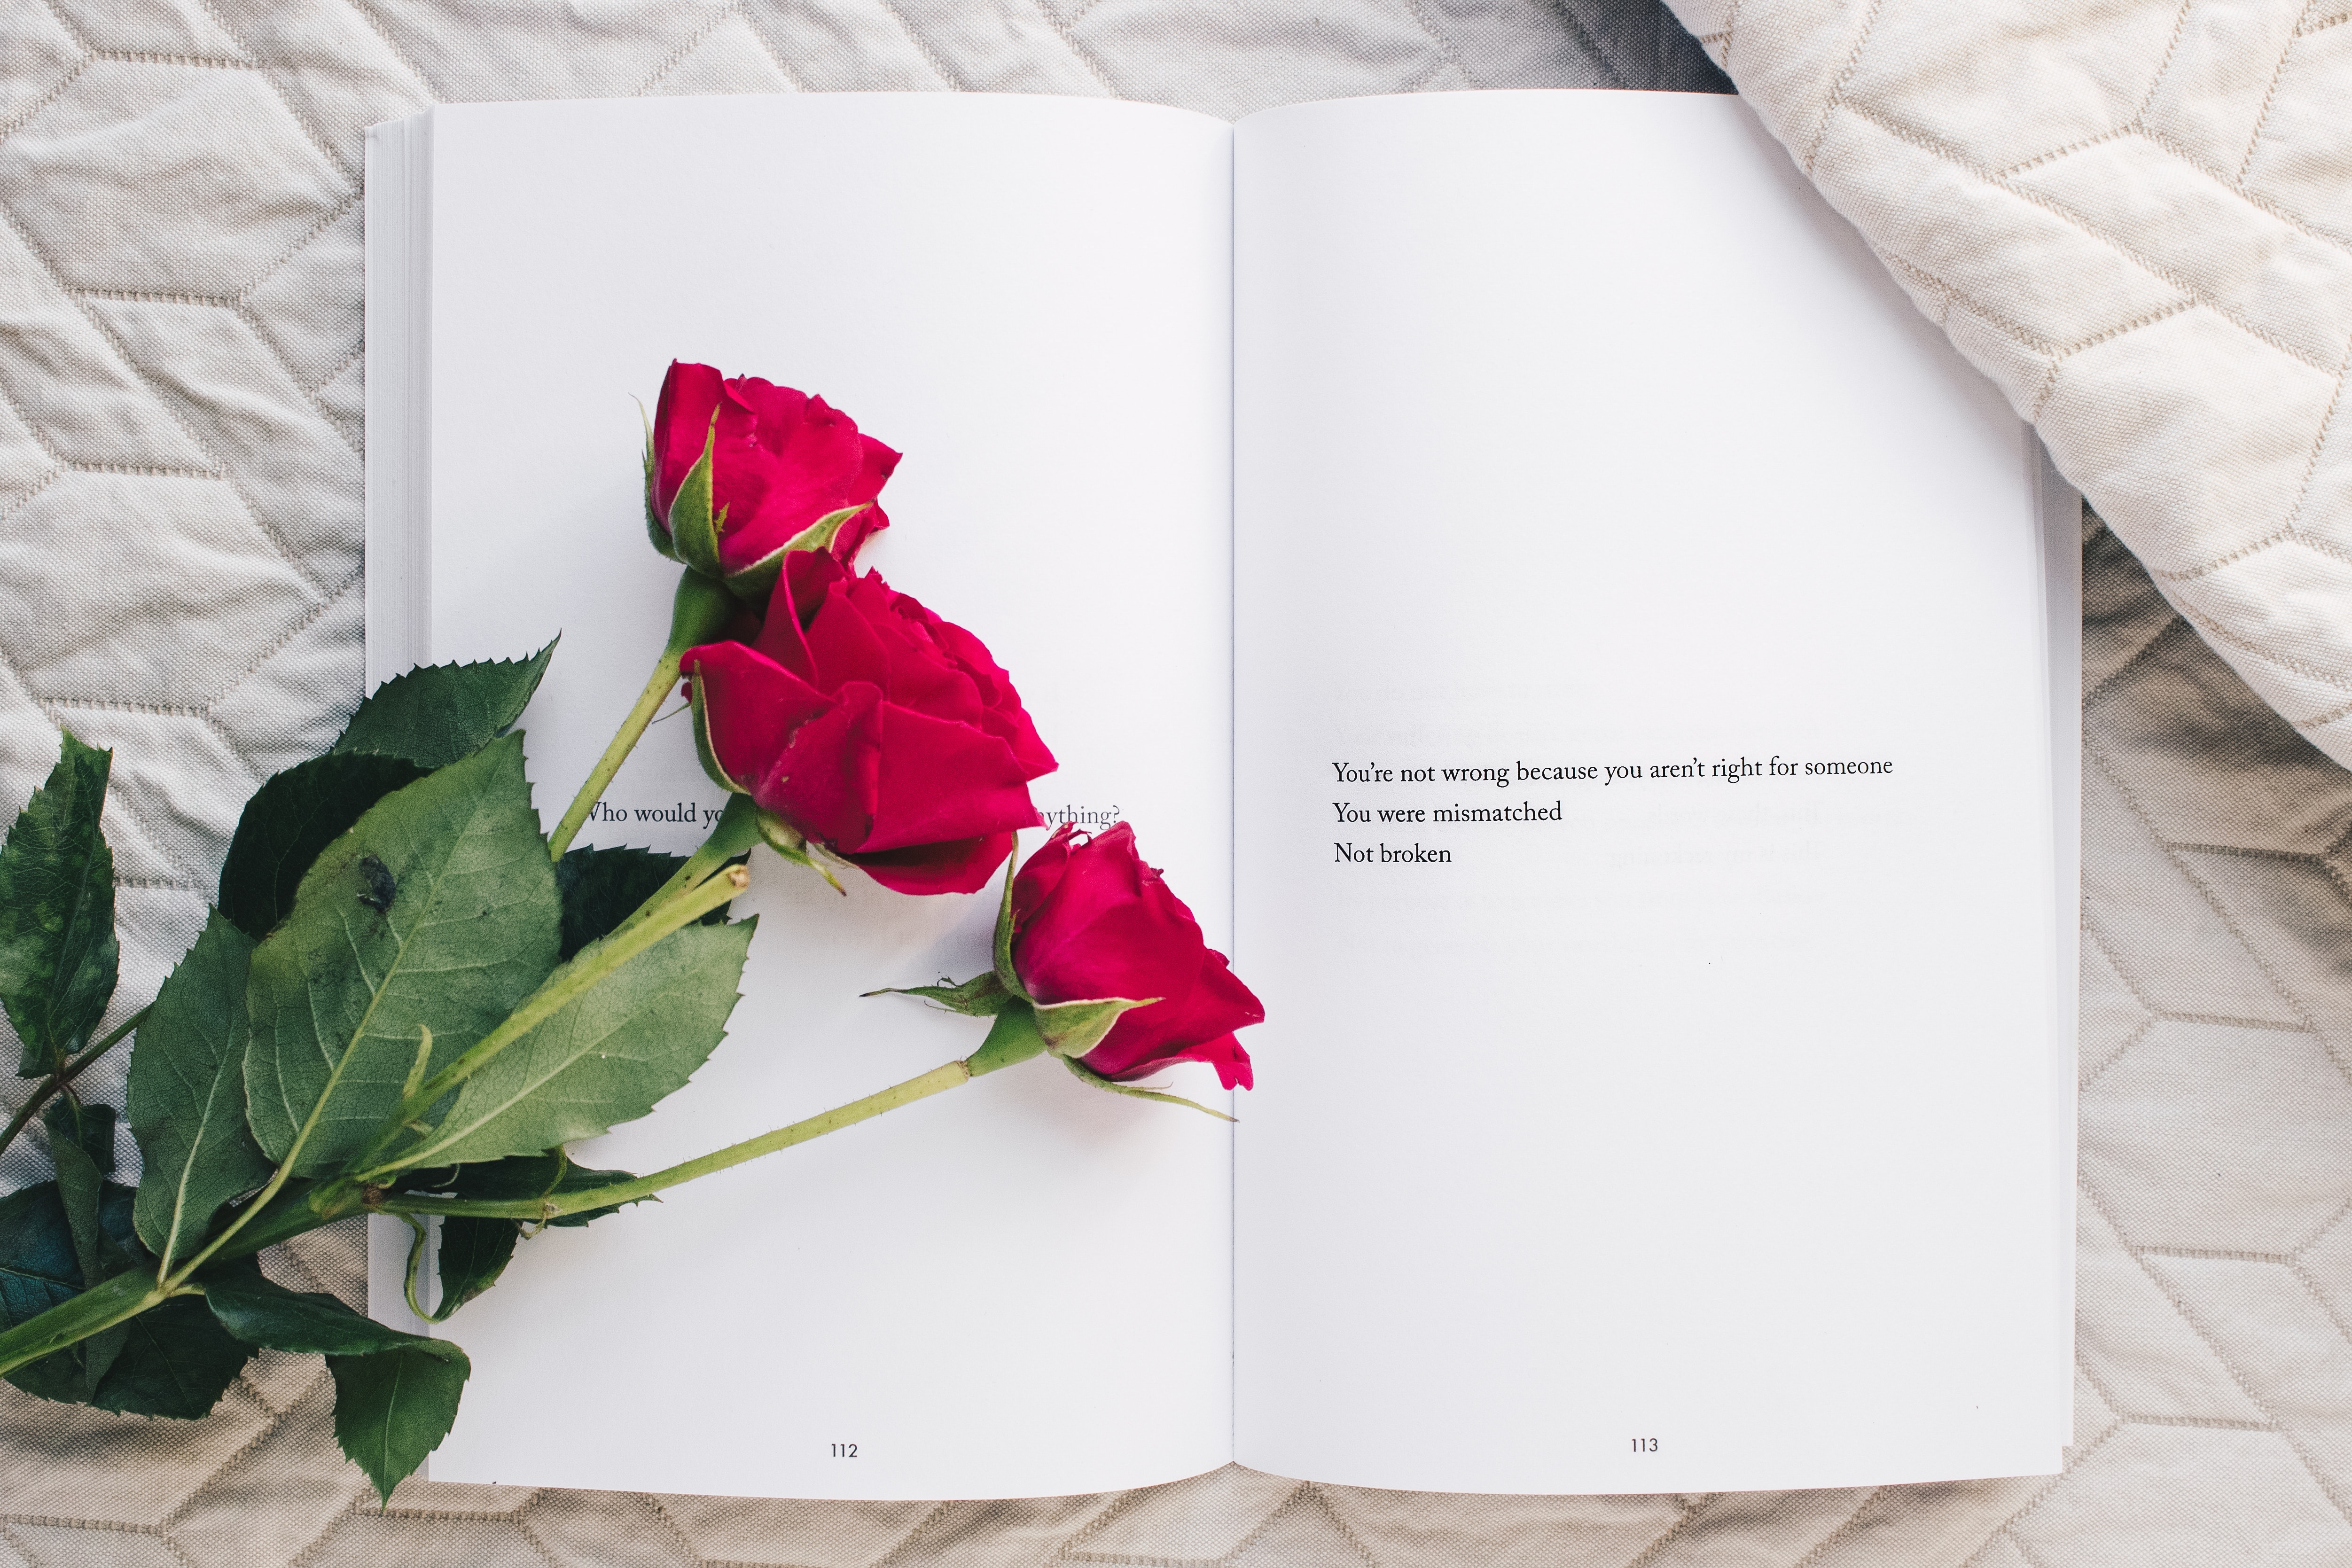 A book with a poem in opened on a bed with 3 red roses across the pages.